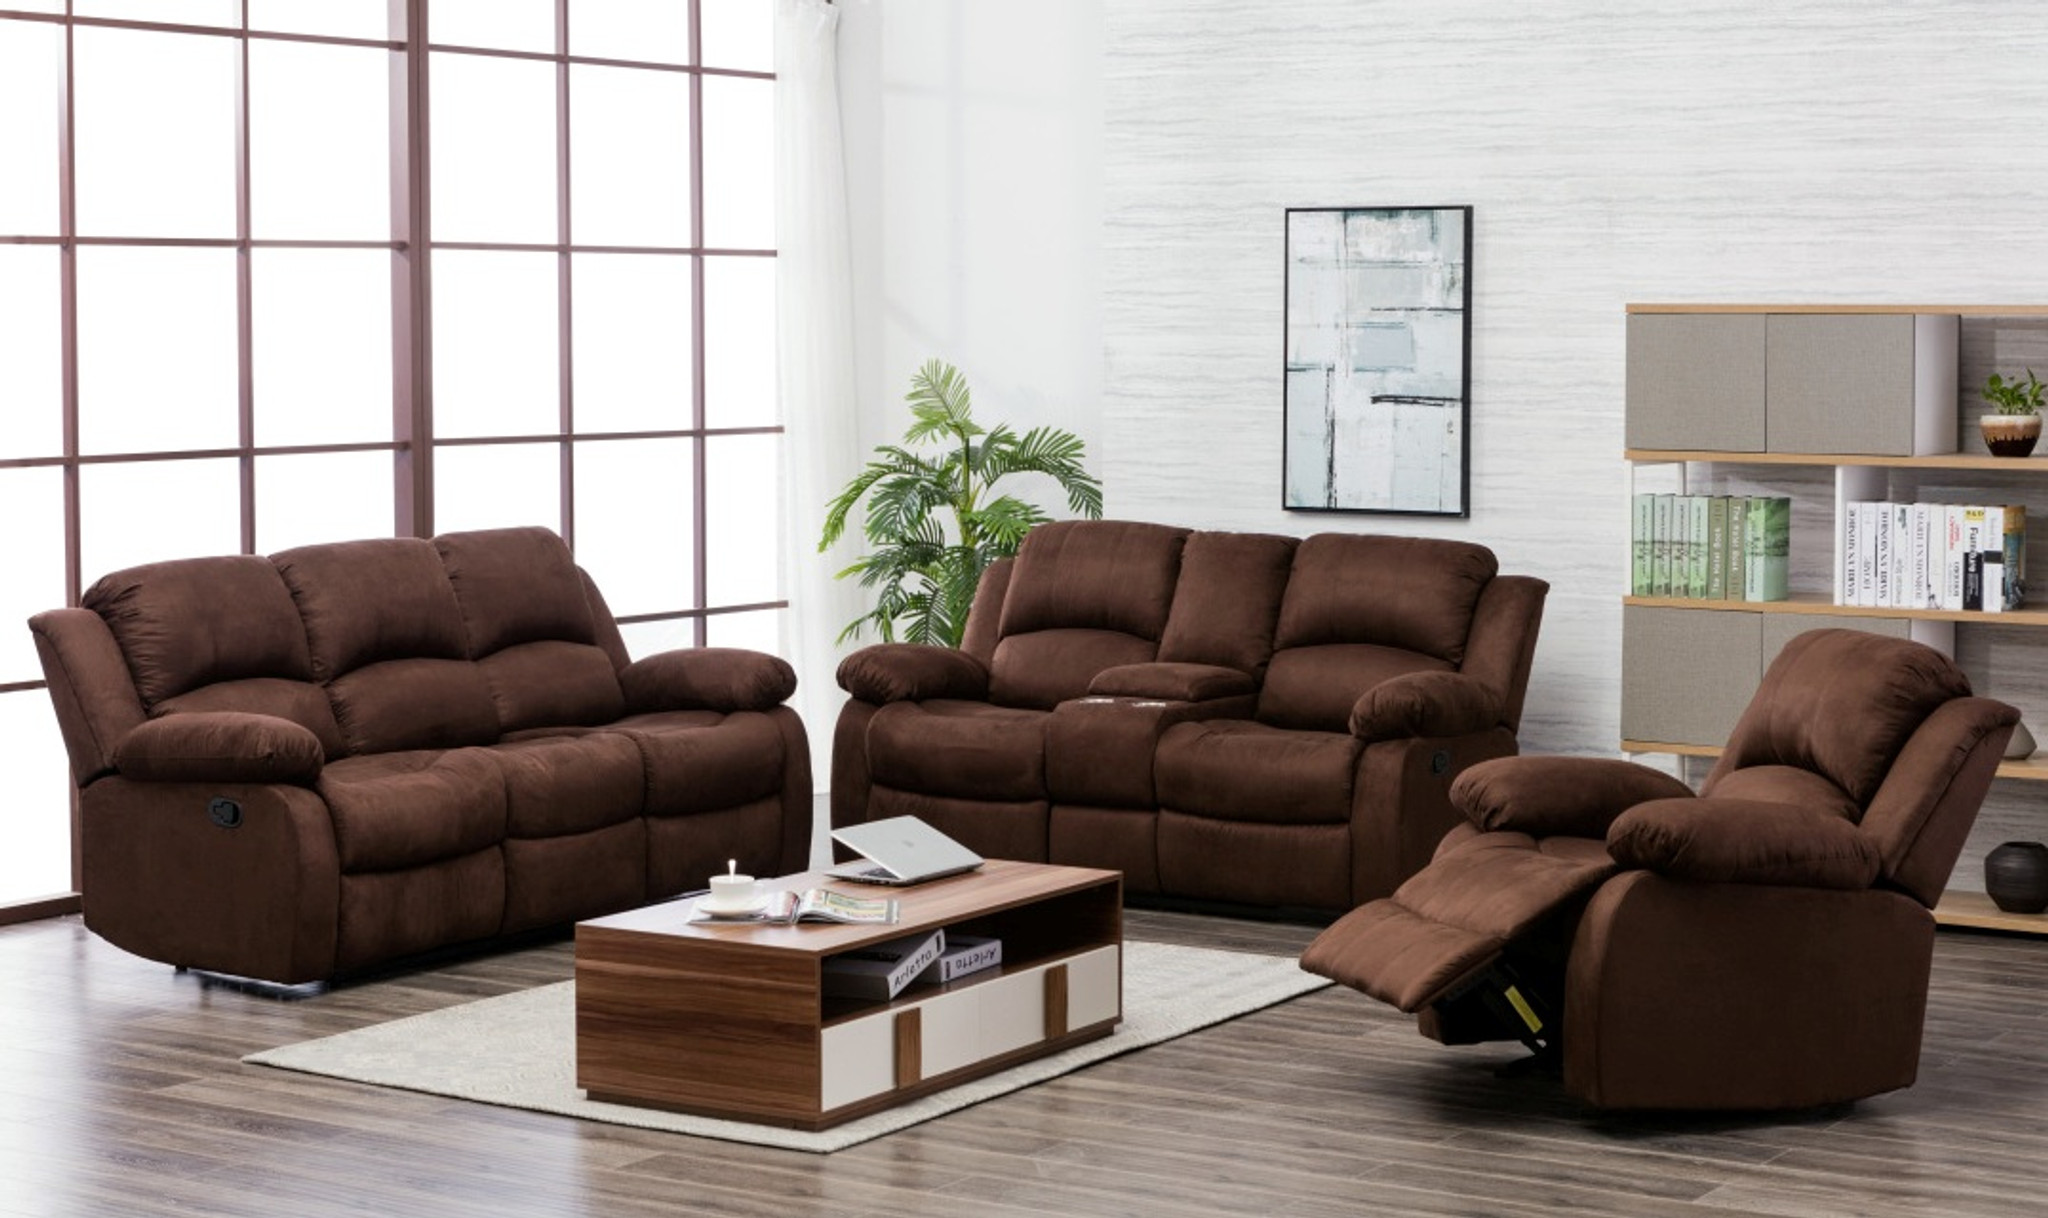 Excellent 2Pcs Microfiber Brown Sofa And Loveseat Set Ncnpc Chair Design For Home Ncnpcorg